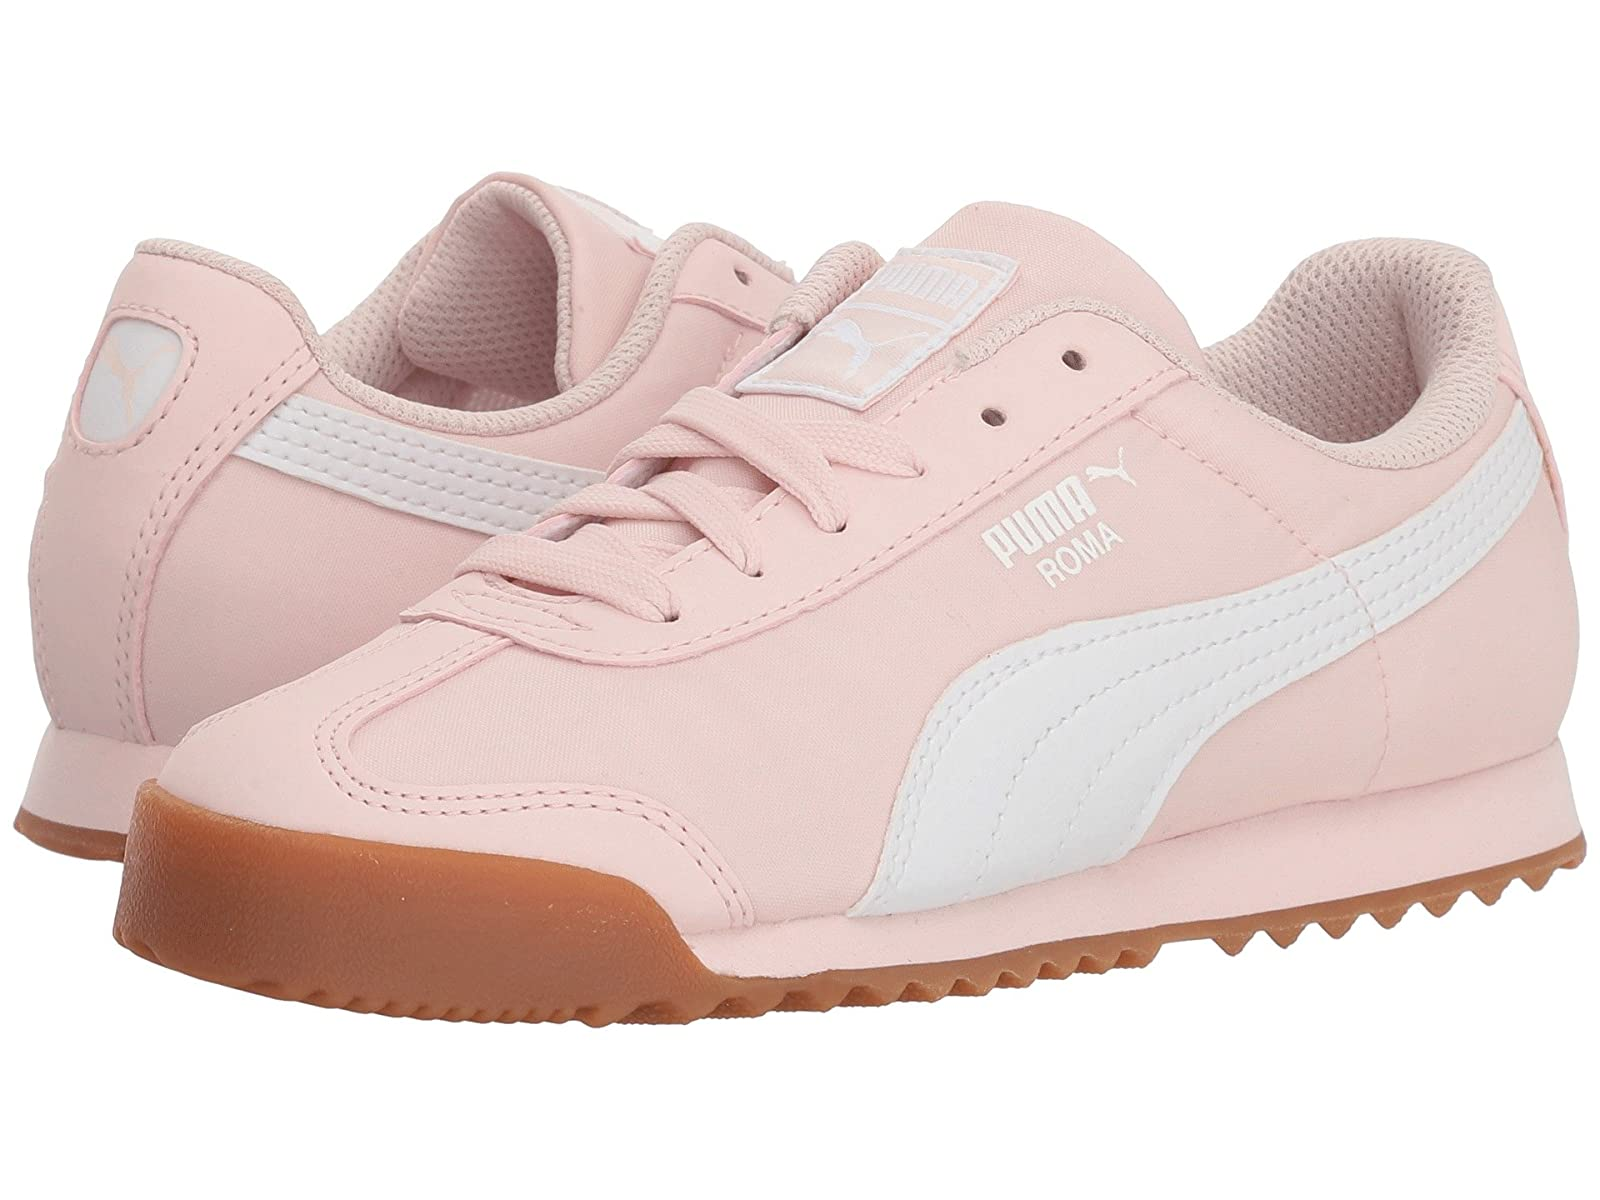 Puma Kids Roma Basic Summer PS (Little Kid/Big Kid)Cheap and distinctive eye-catching shoes